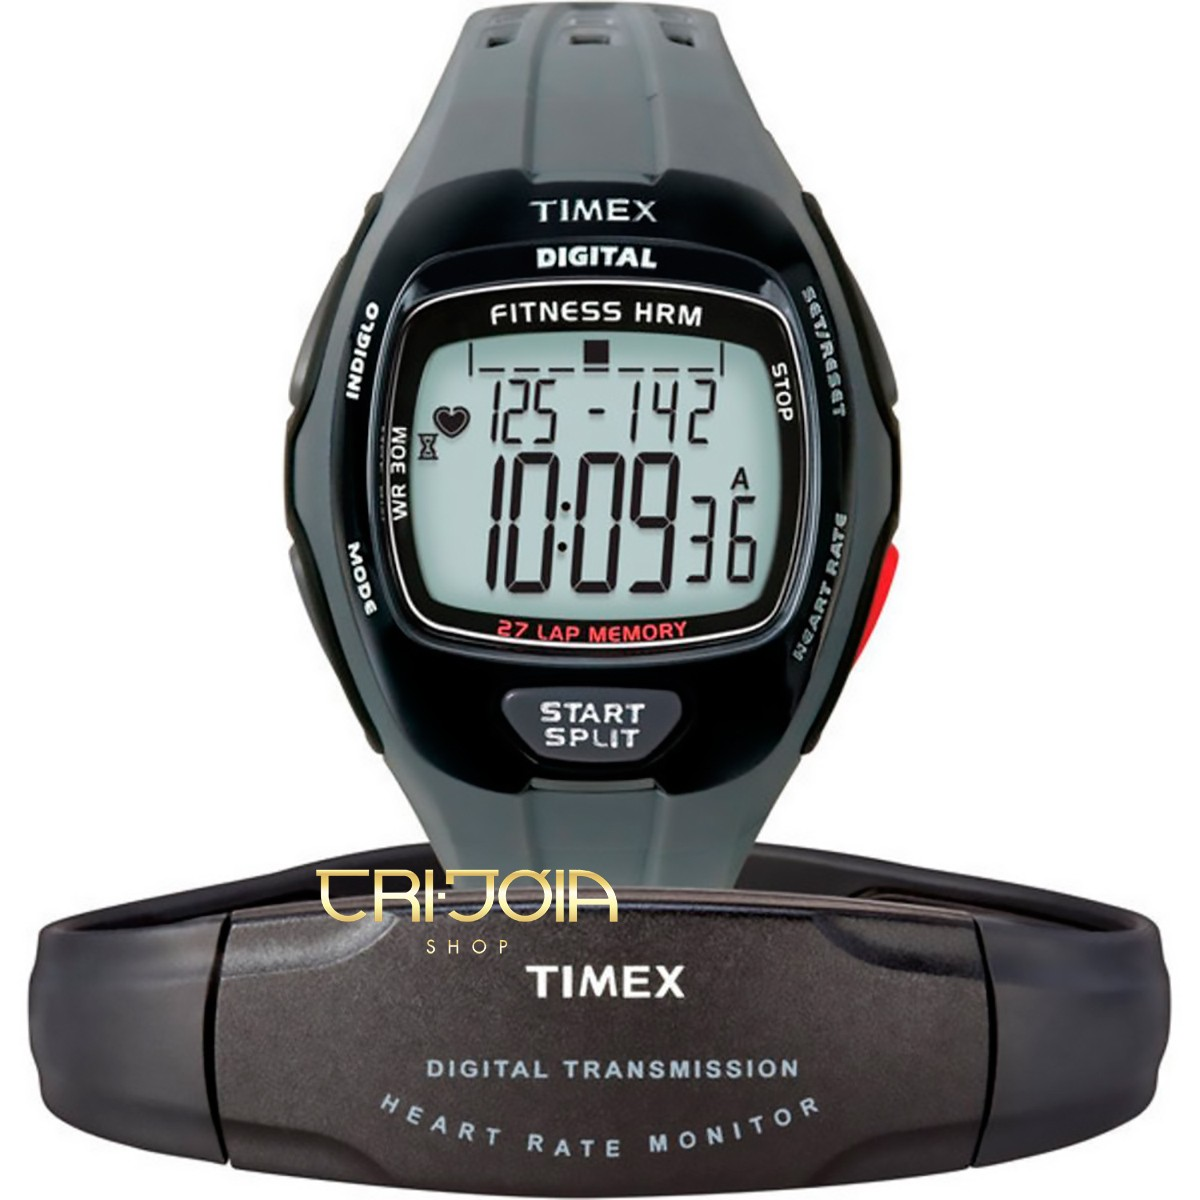 c98845726e8 Relógio Digital Timex Zone Trainer T5K736